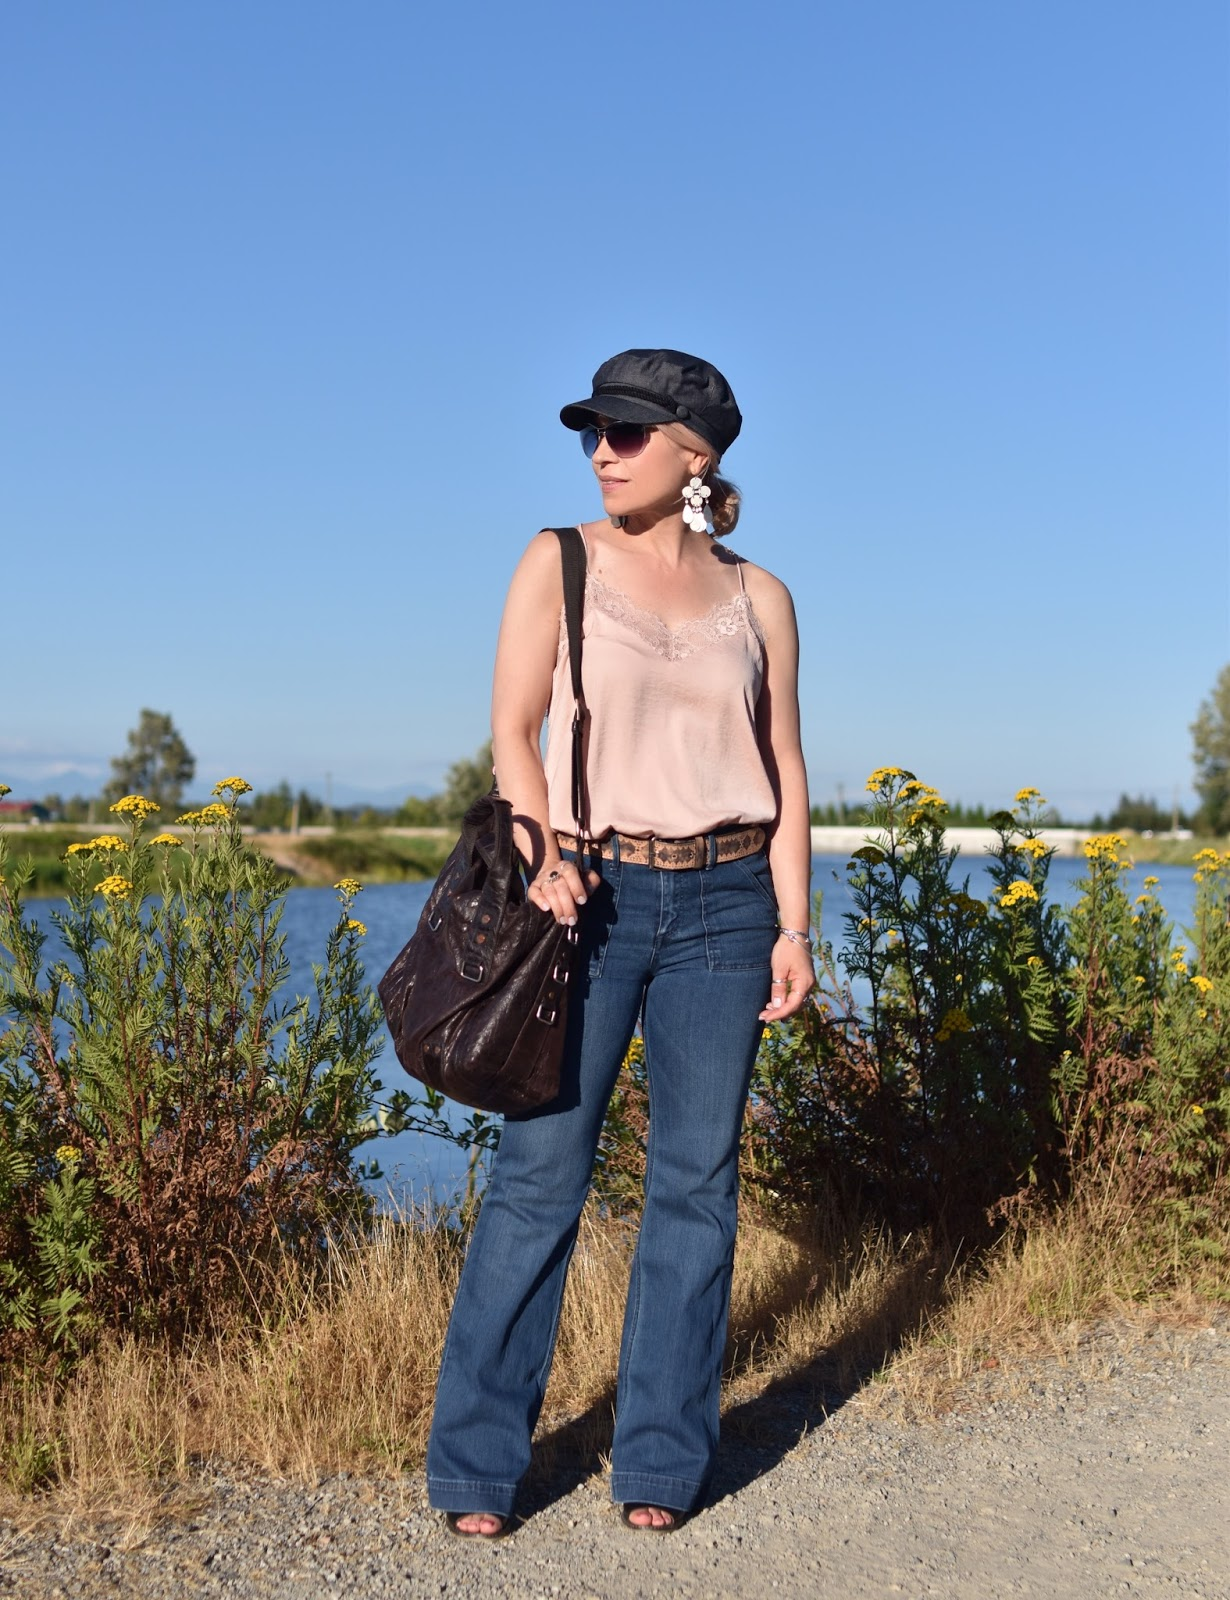 Monika Faulkner personal style inspiration - styling a pink lace-trimmed camisole with flare jeans and a baker boy cap